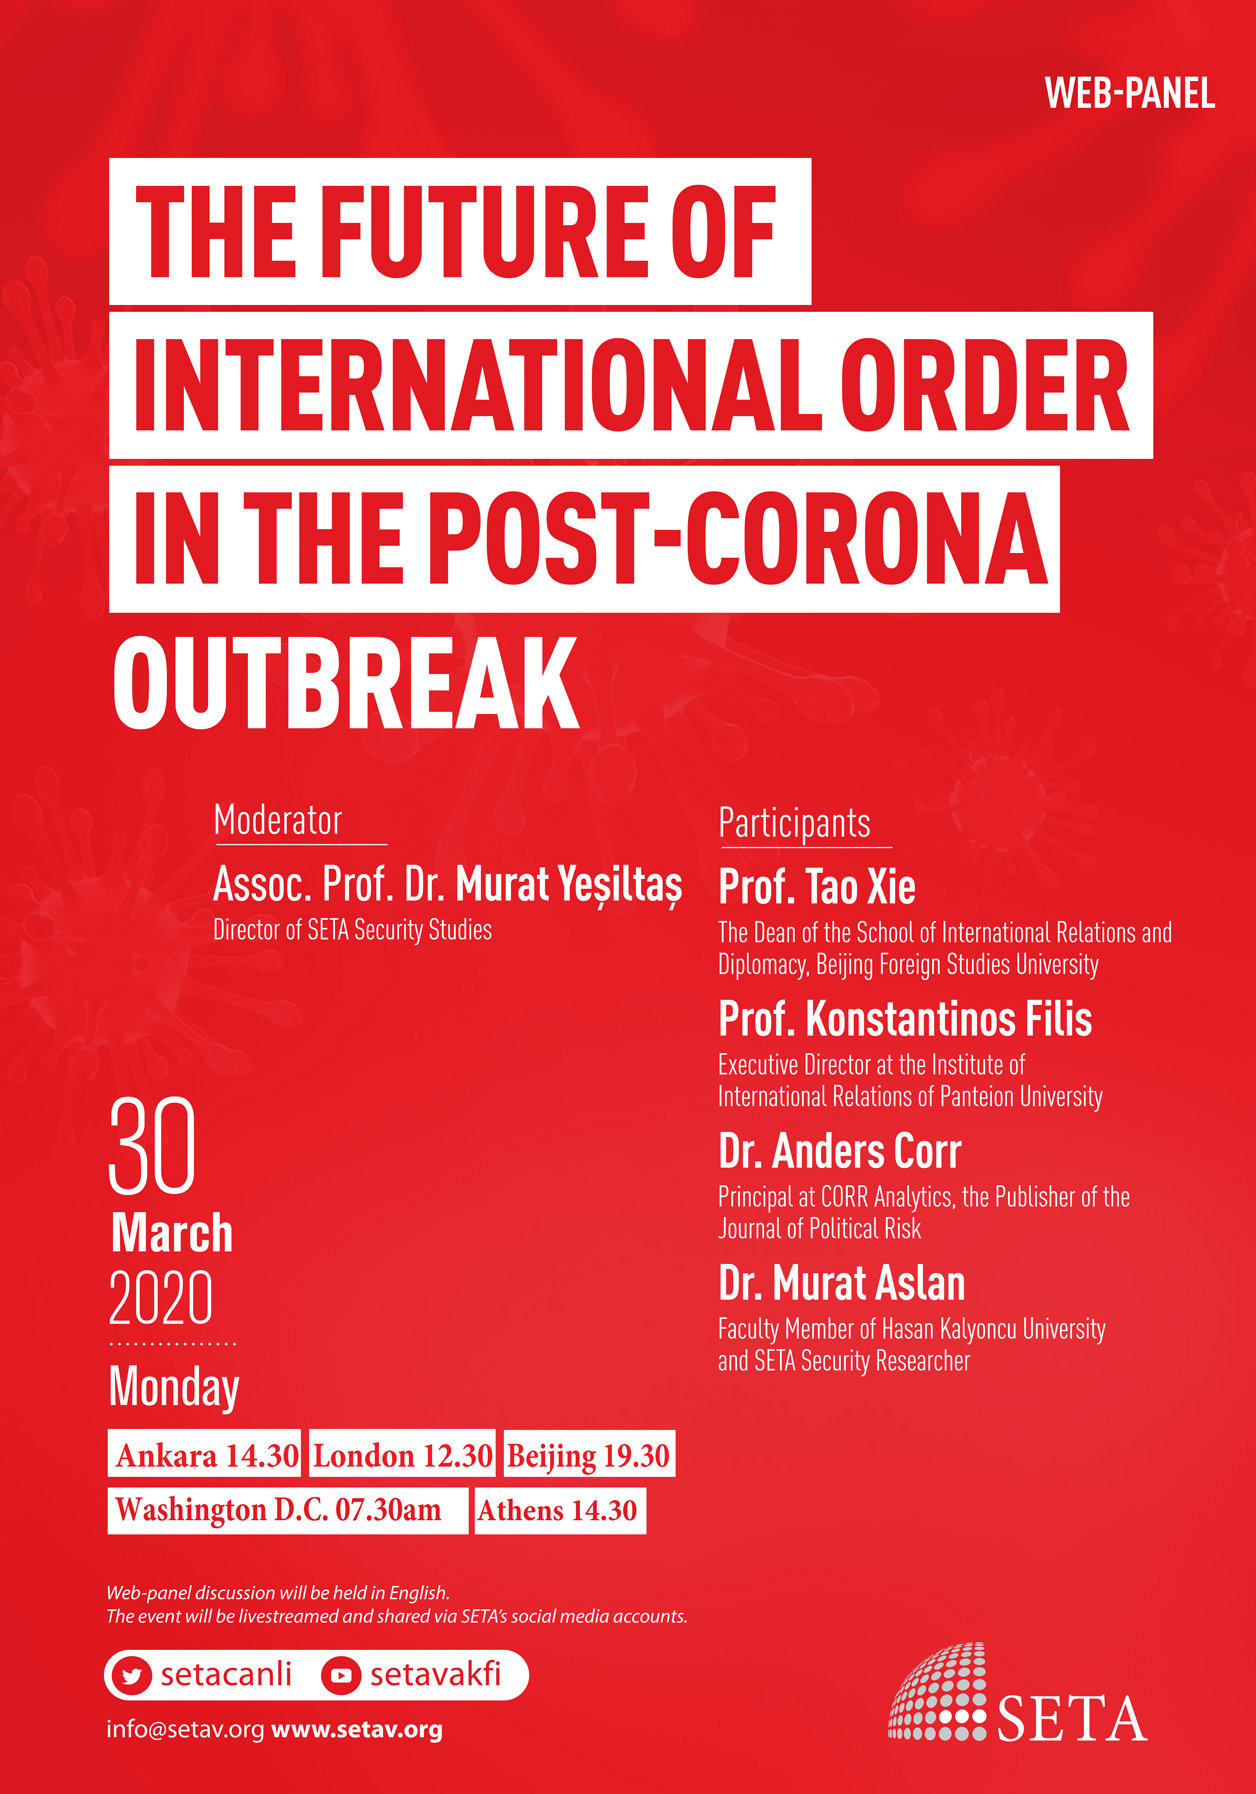 Web-Panel: The Future of International Order in the Post-Corona Outbreak